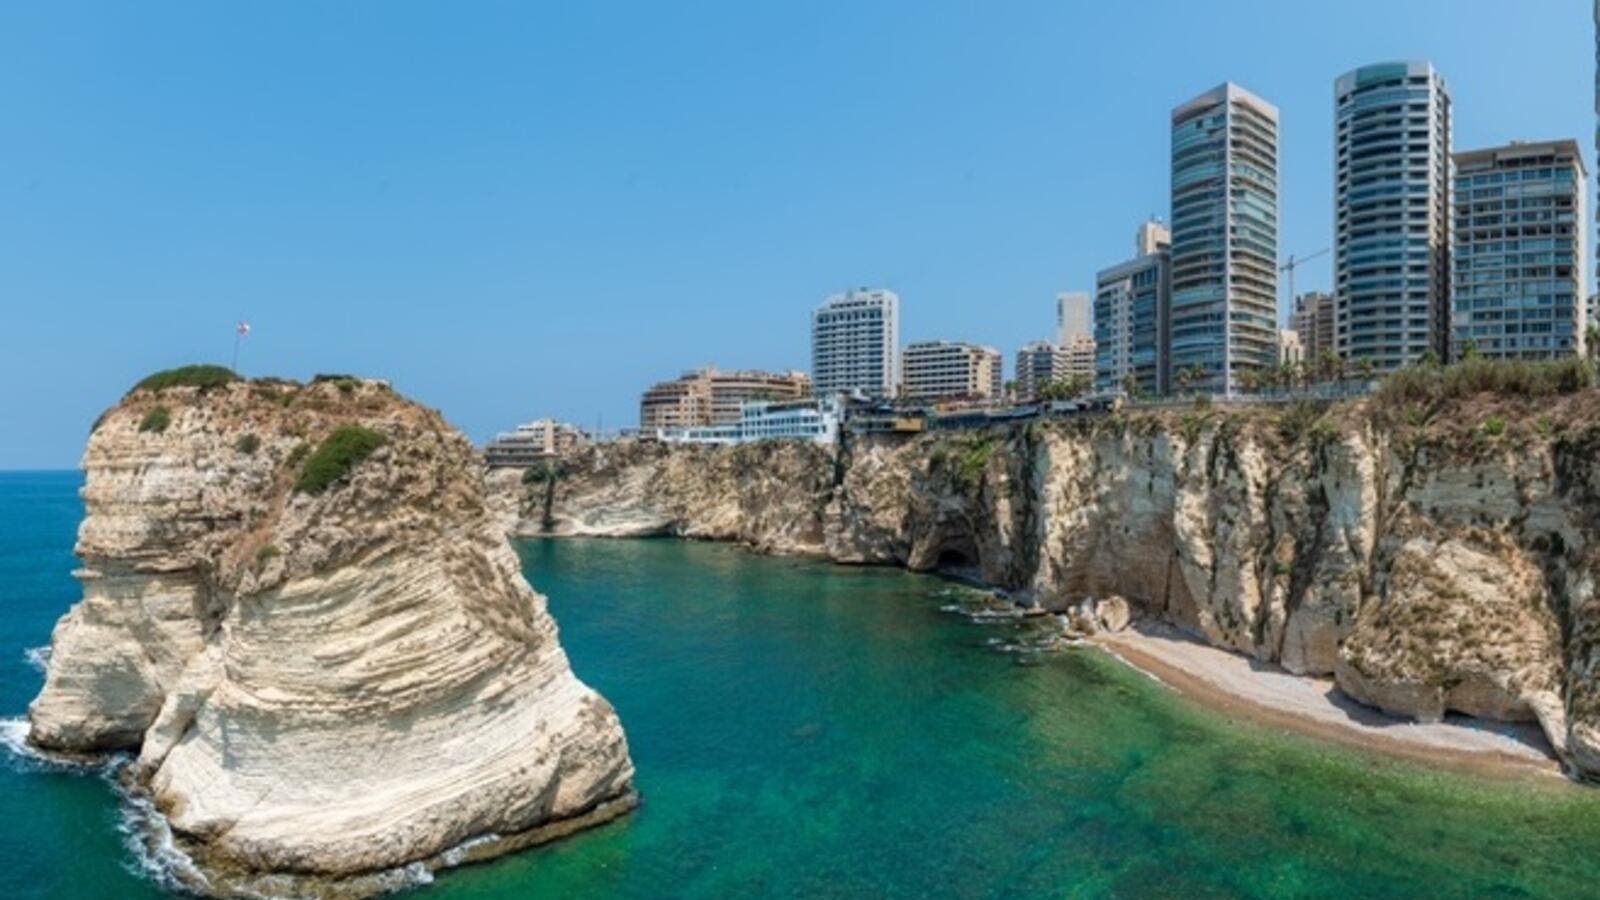 A new survey showed Beirut ranks as the world's eighth most expensive city in terms of the cost of living for expats. (Shutterstock)